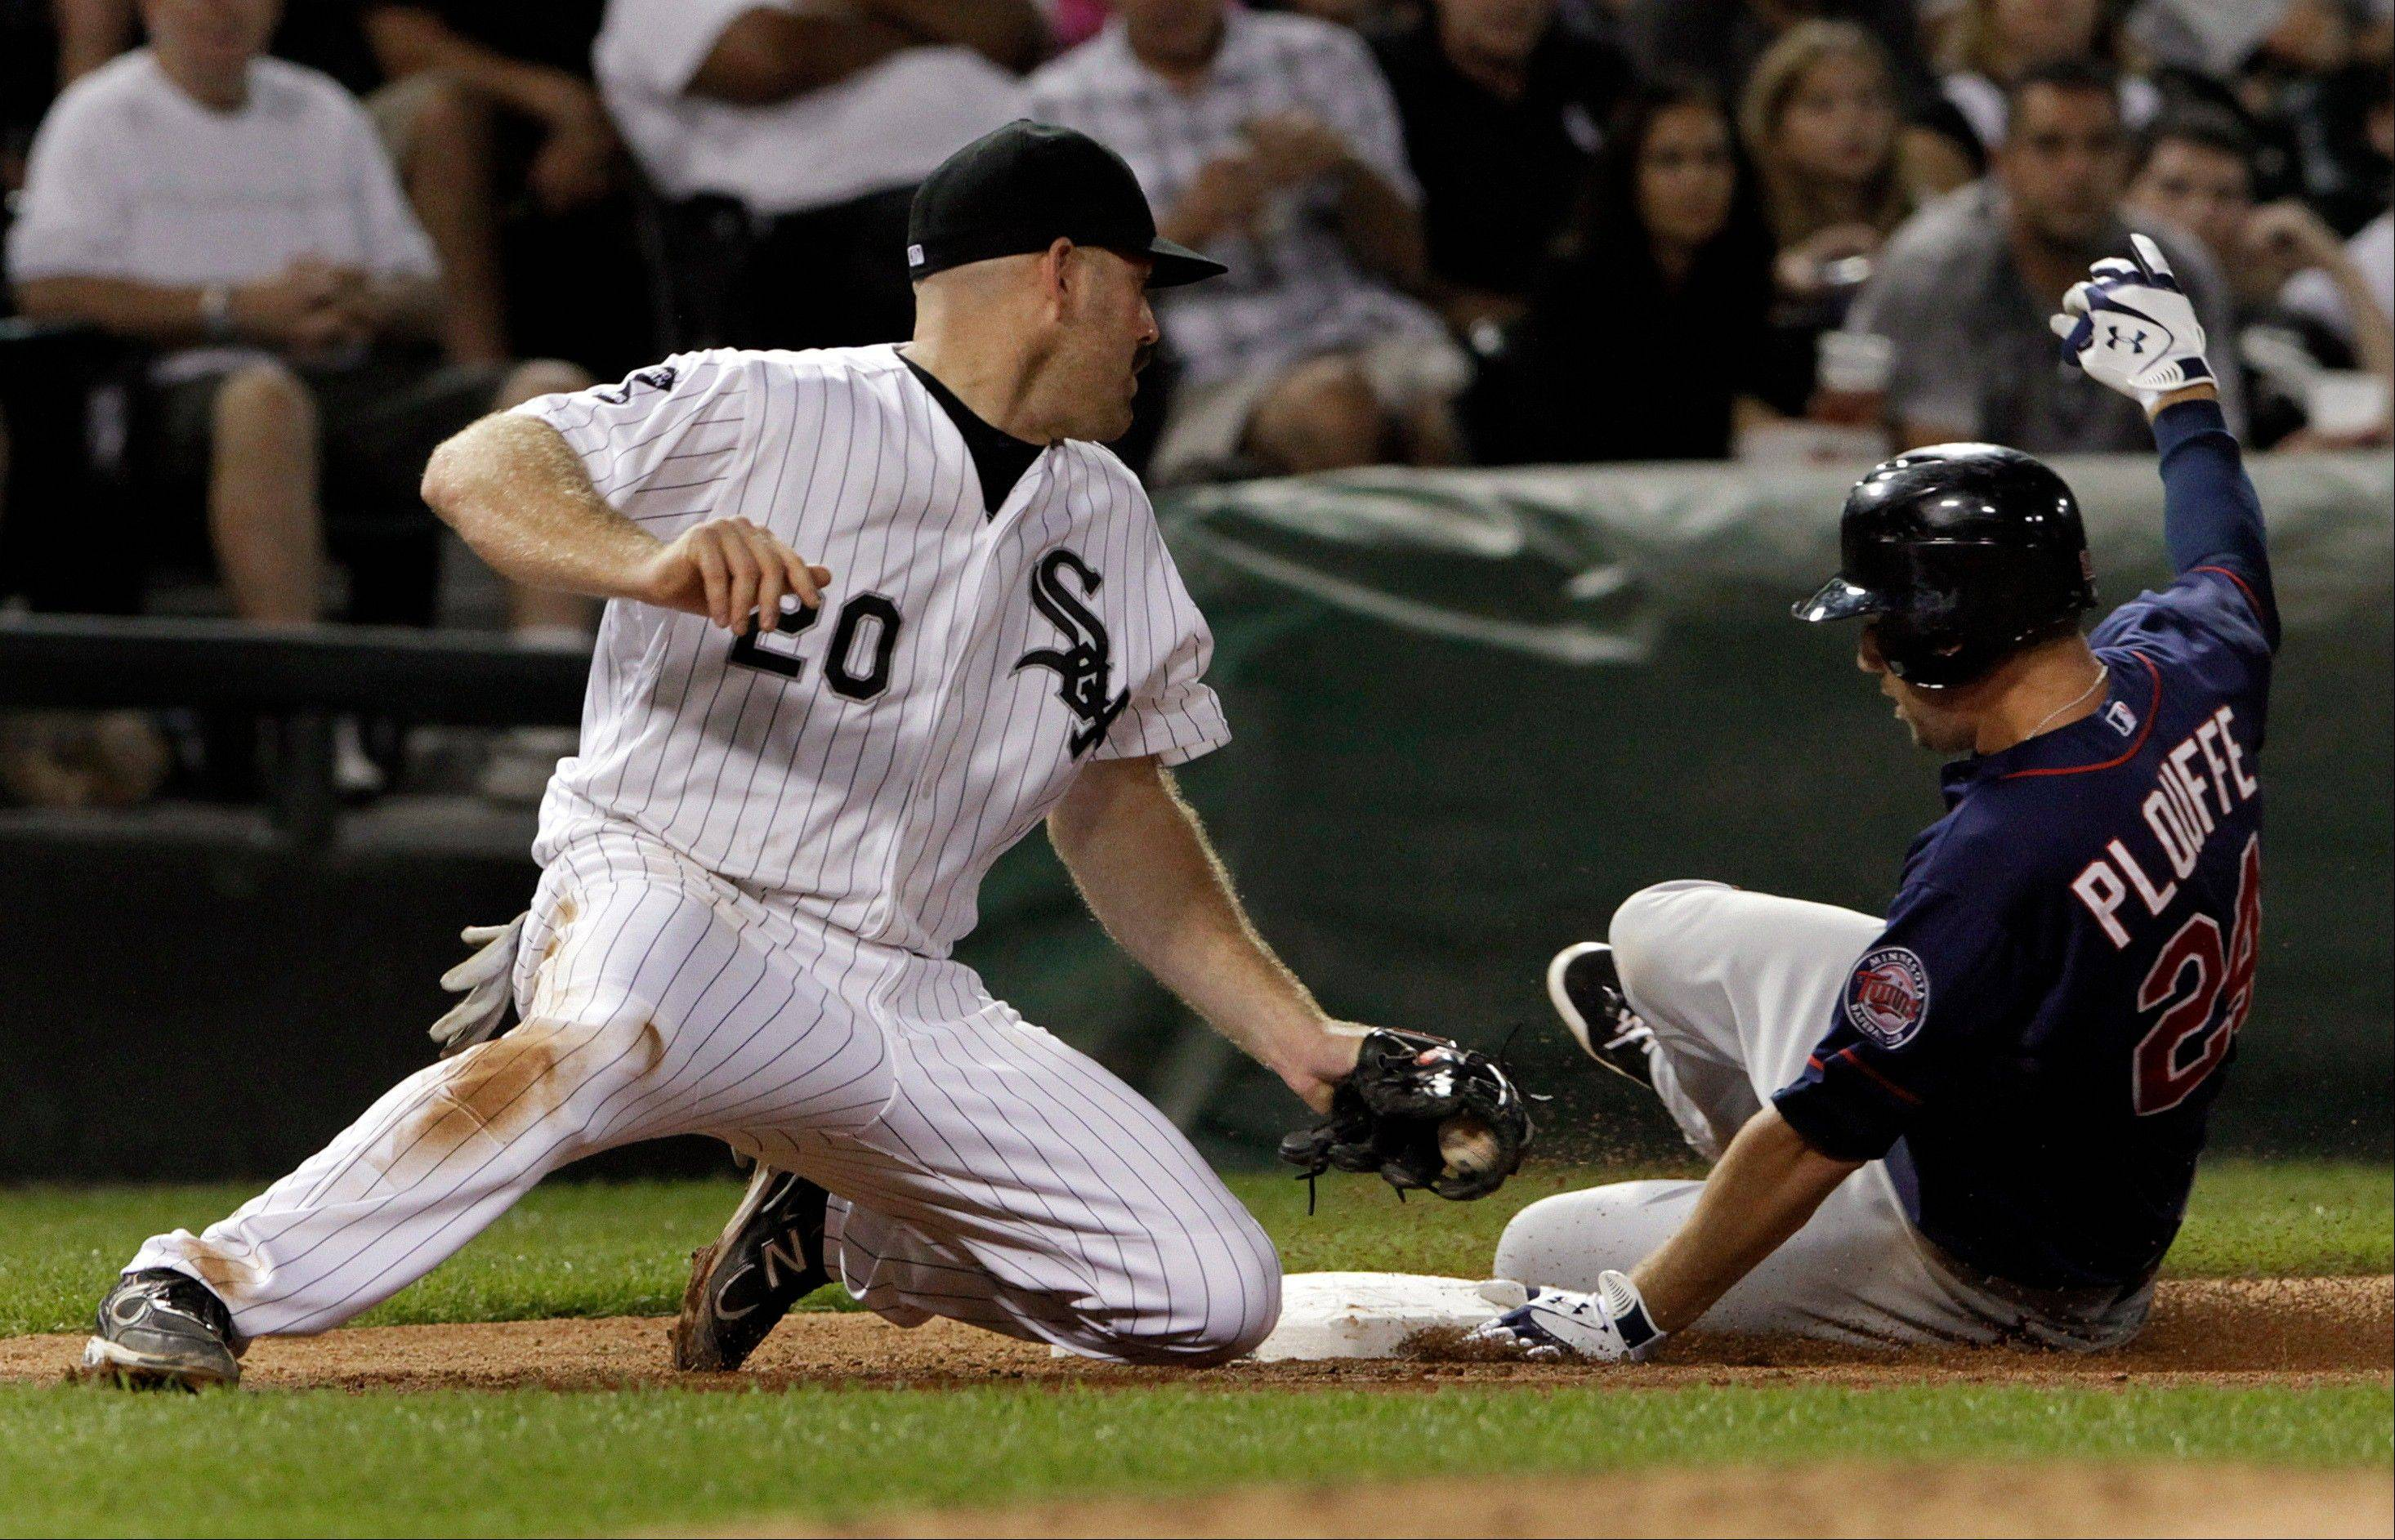 Minnesota Twins' Trevor Plouffe gets under the tag of White Sox third baseman Kevin Youkilis with an RBI triple during Tuesday's fifth inning.